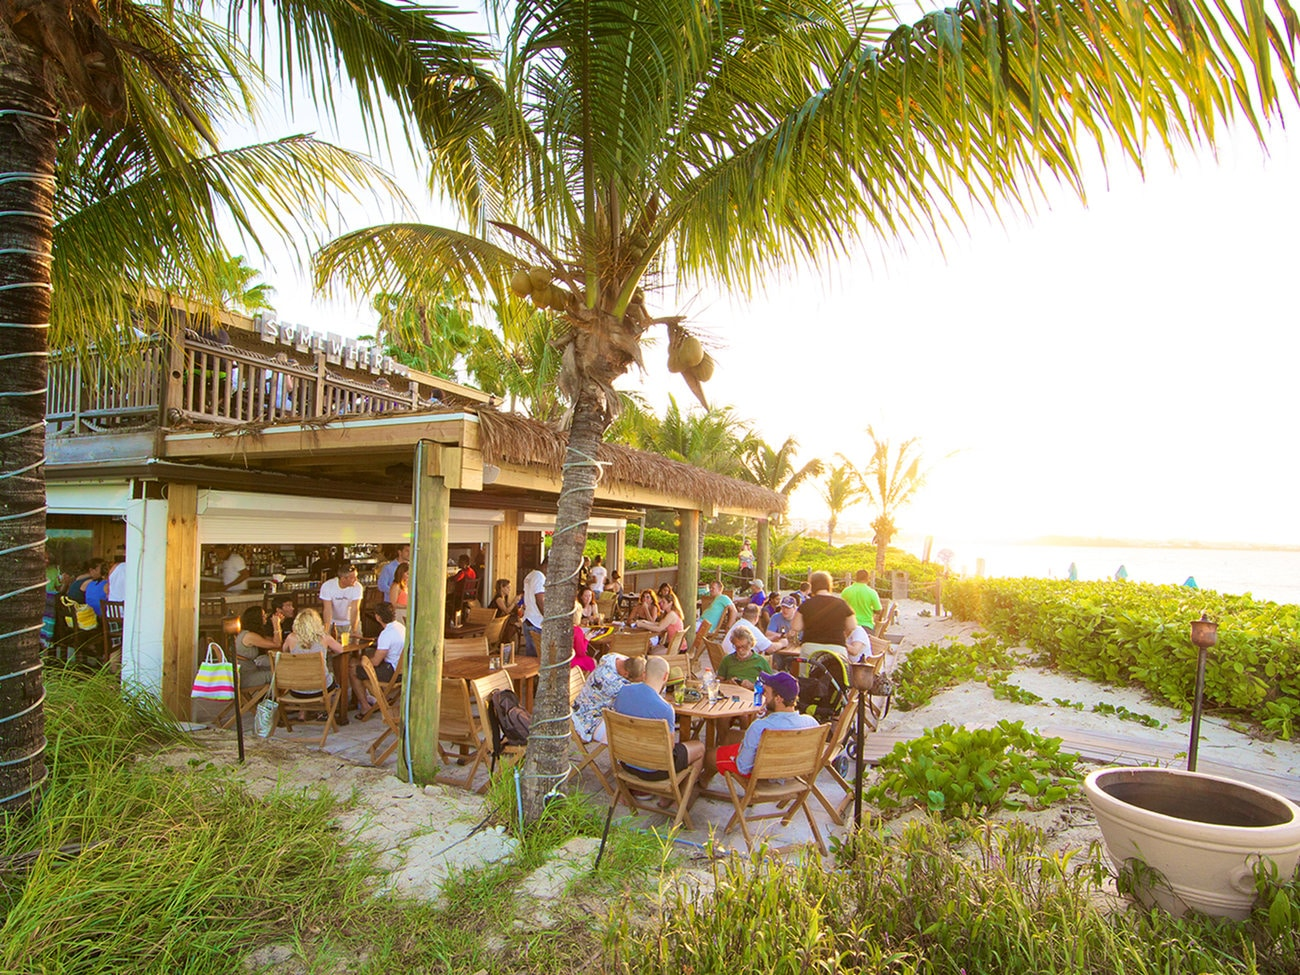 The Conch Shack Best Restaurants in turks and Caicos